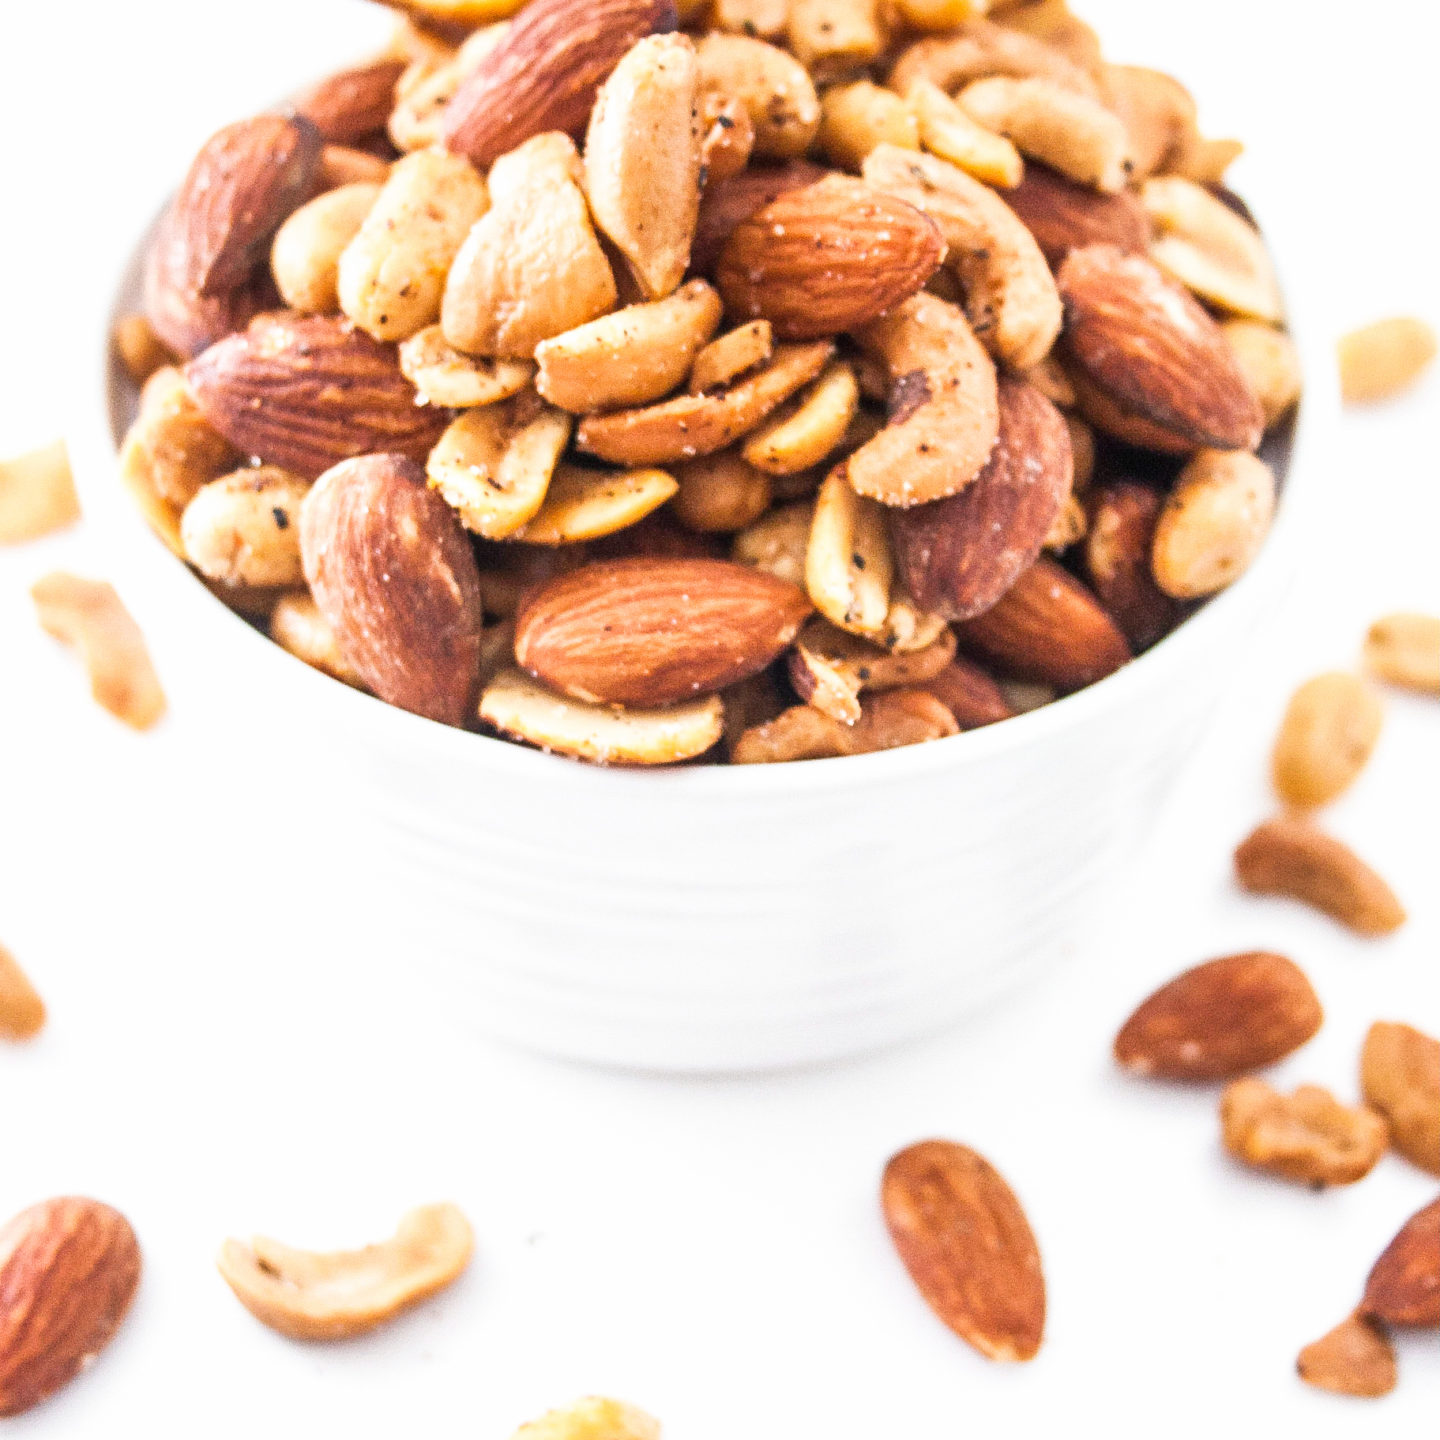 Seasoned and Roasted Nuts